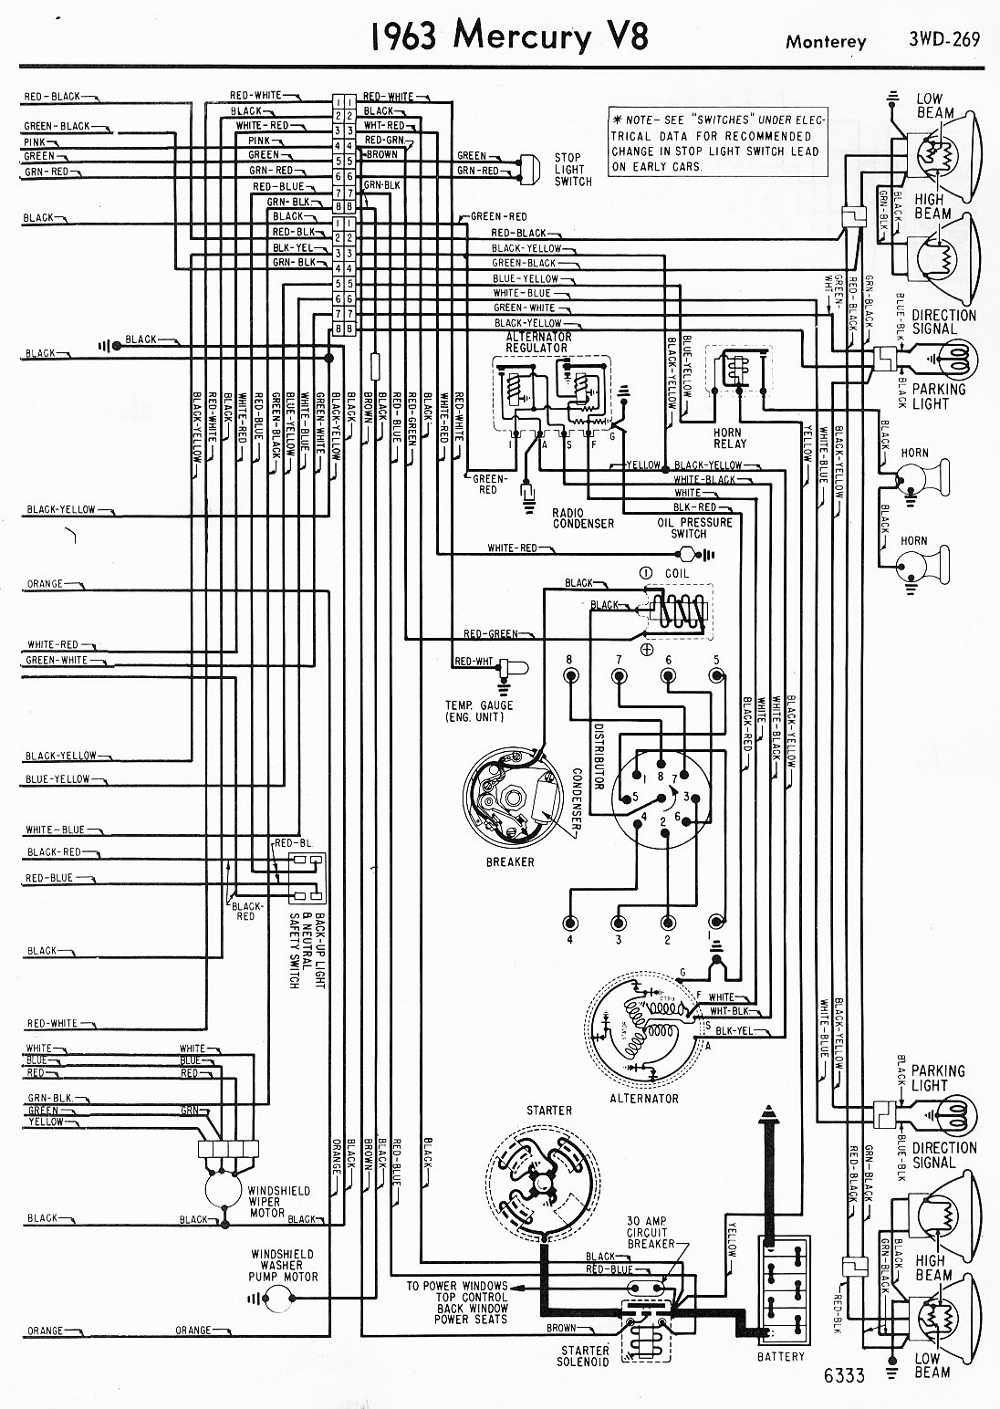 1978 Mercury 500 Wiring Schematic Diagram Library 3 Wire Ford Distributor V8 Monterey 1963 Right Side Part